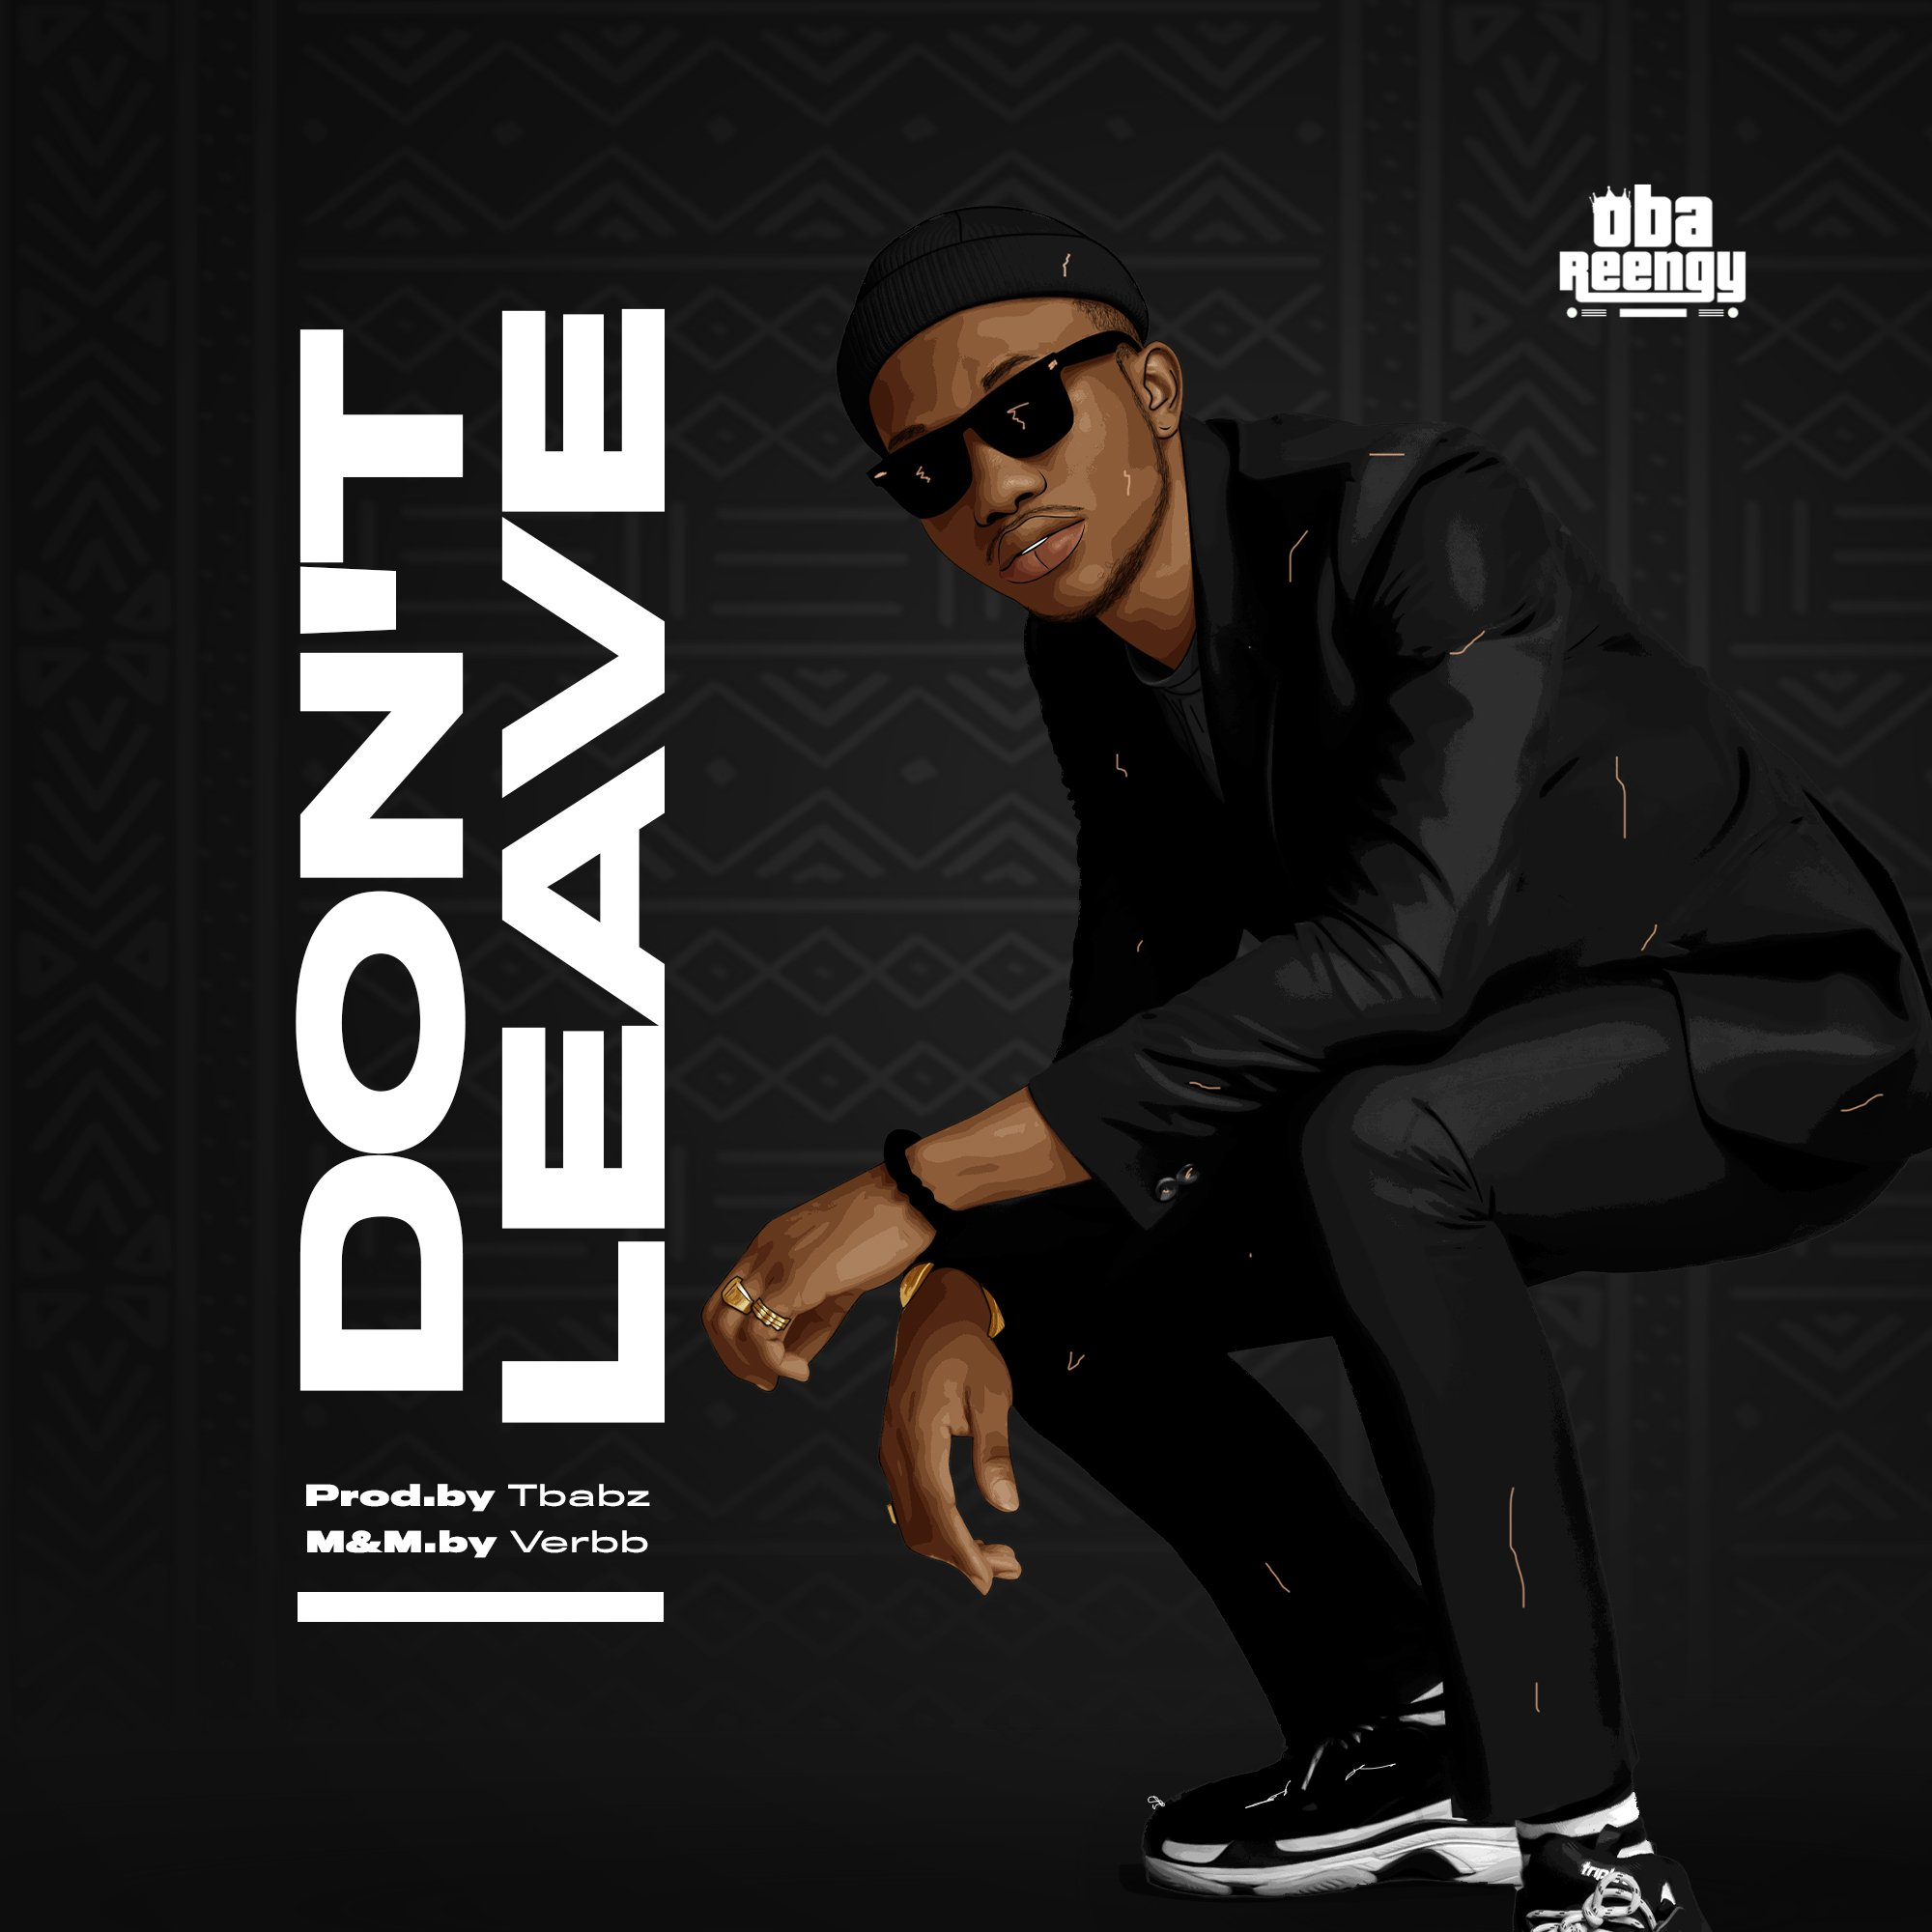 DOWNLOAD Music: Oba Reengy – Don't Leave (Prod. by Tbabz)